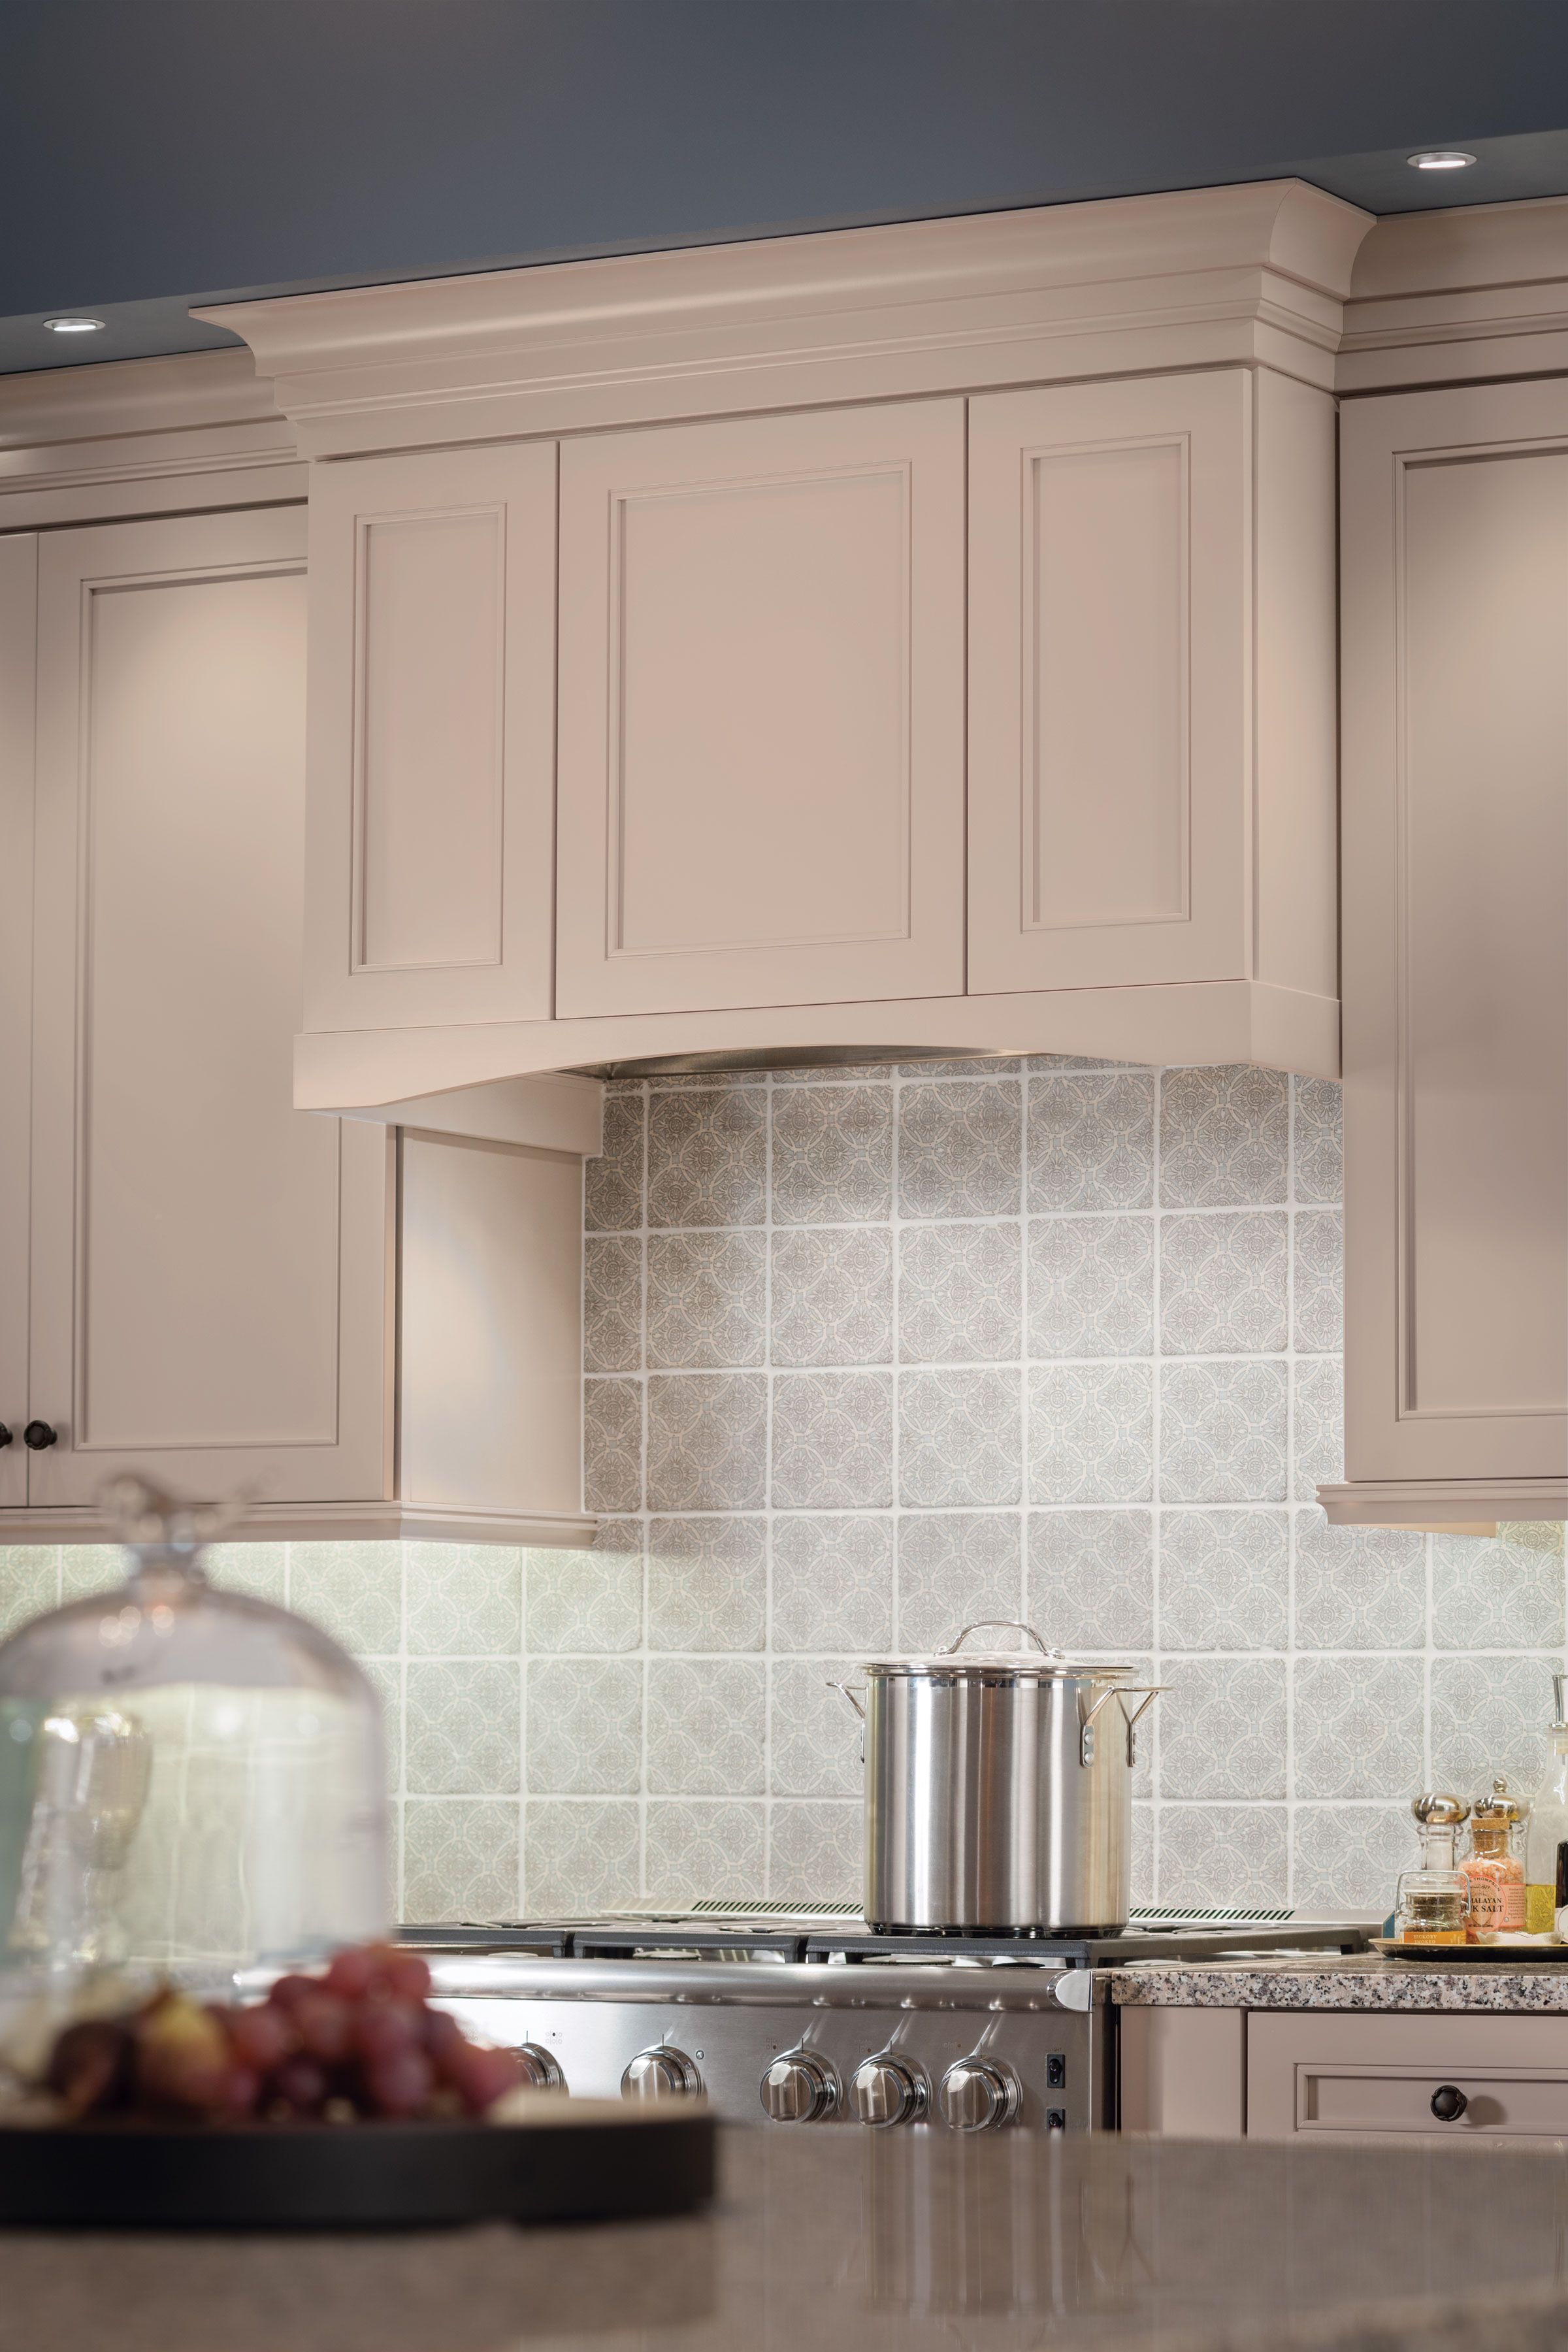 KraftMaid Cabinetryu0027s Wall Hood Box Makes This Commercial Grade Stove A  Focal Point Of This